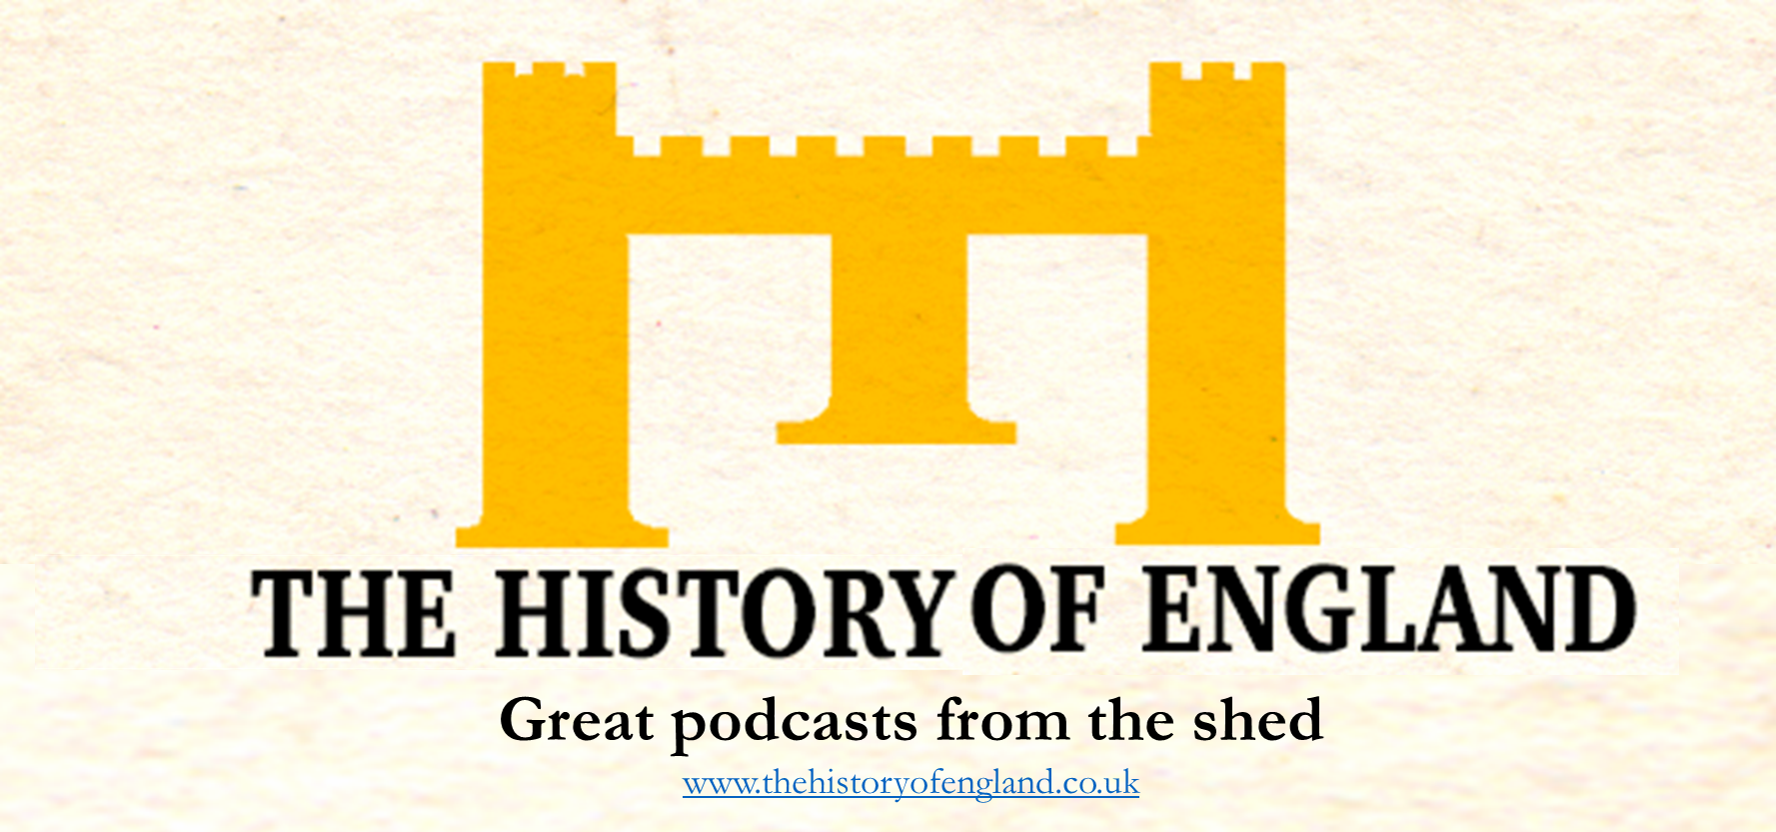 thehistoryofengland.co.uk